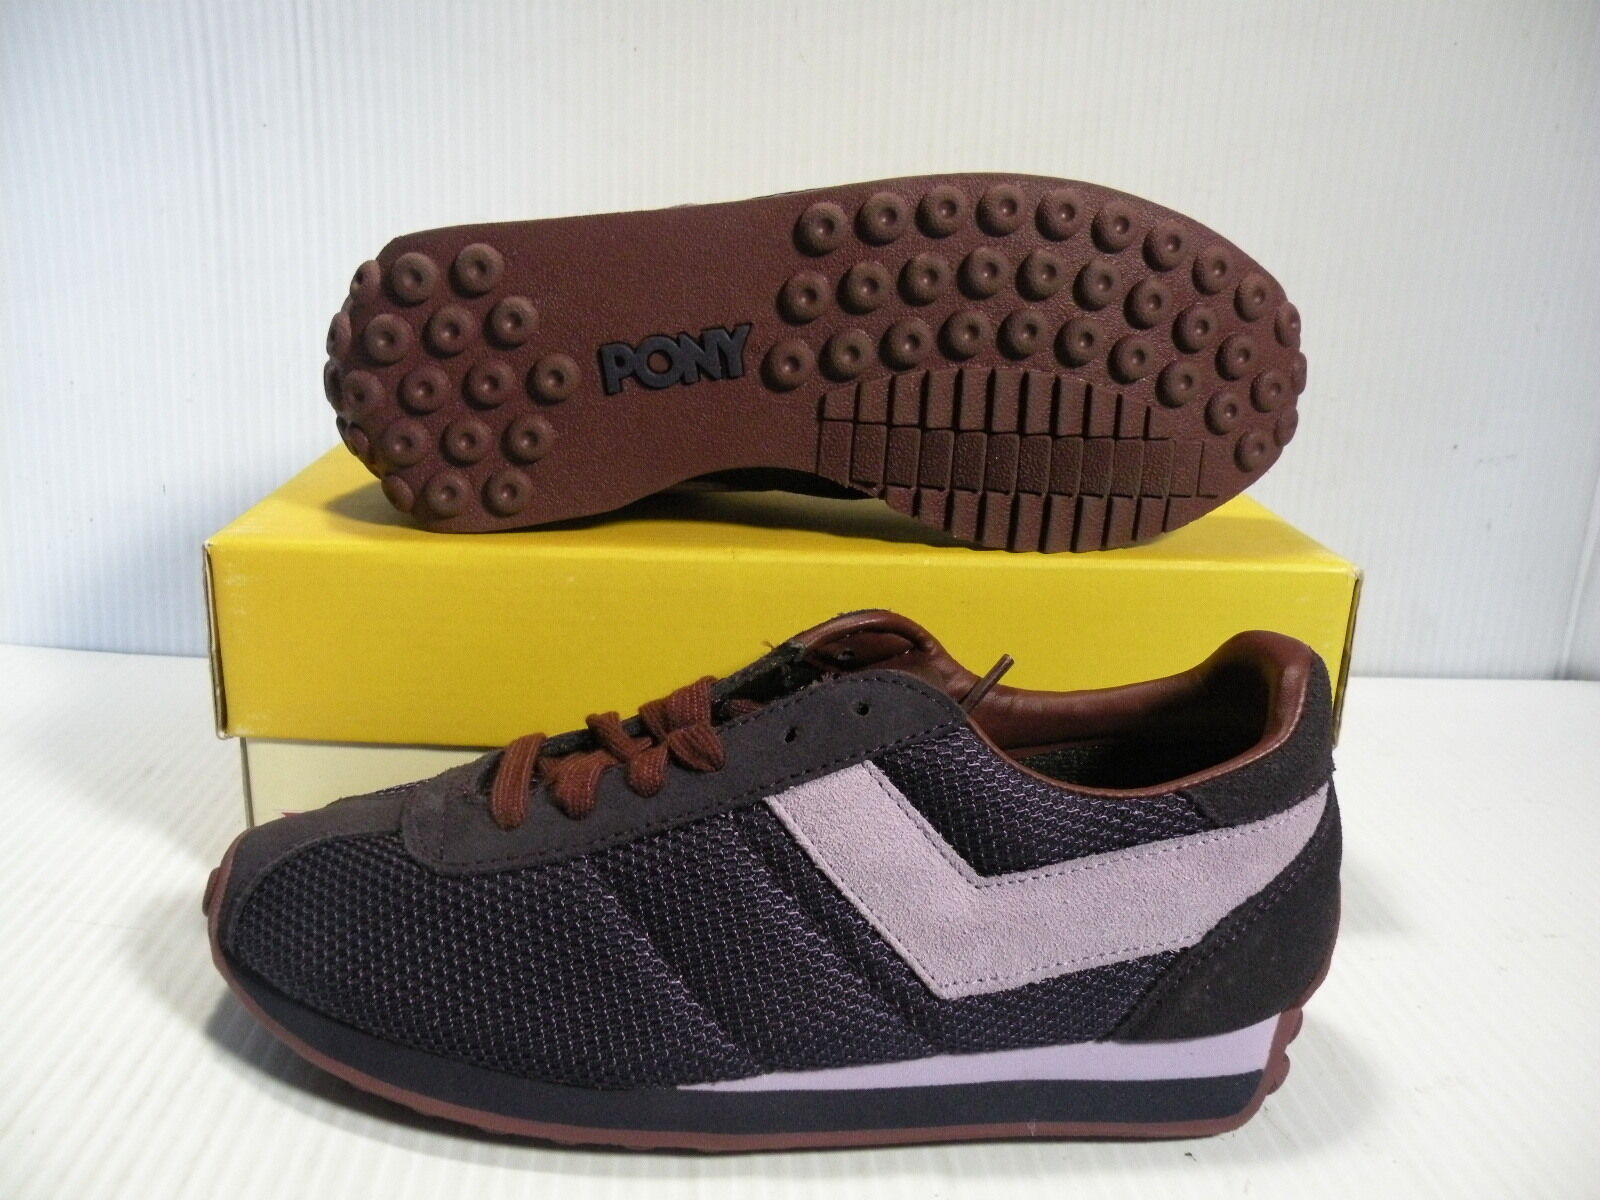 PONY SHE RUN '78 LOW SHDE/DEC SNEAKERS WOMEN Schuhe NT SHDE/DEC LOW CH 9938 SIZE 6.5 NEW b28a33